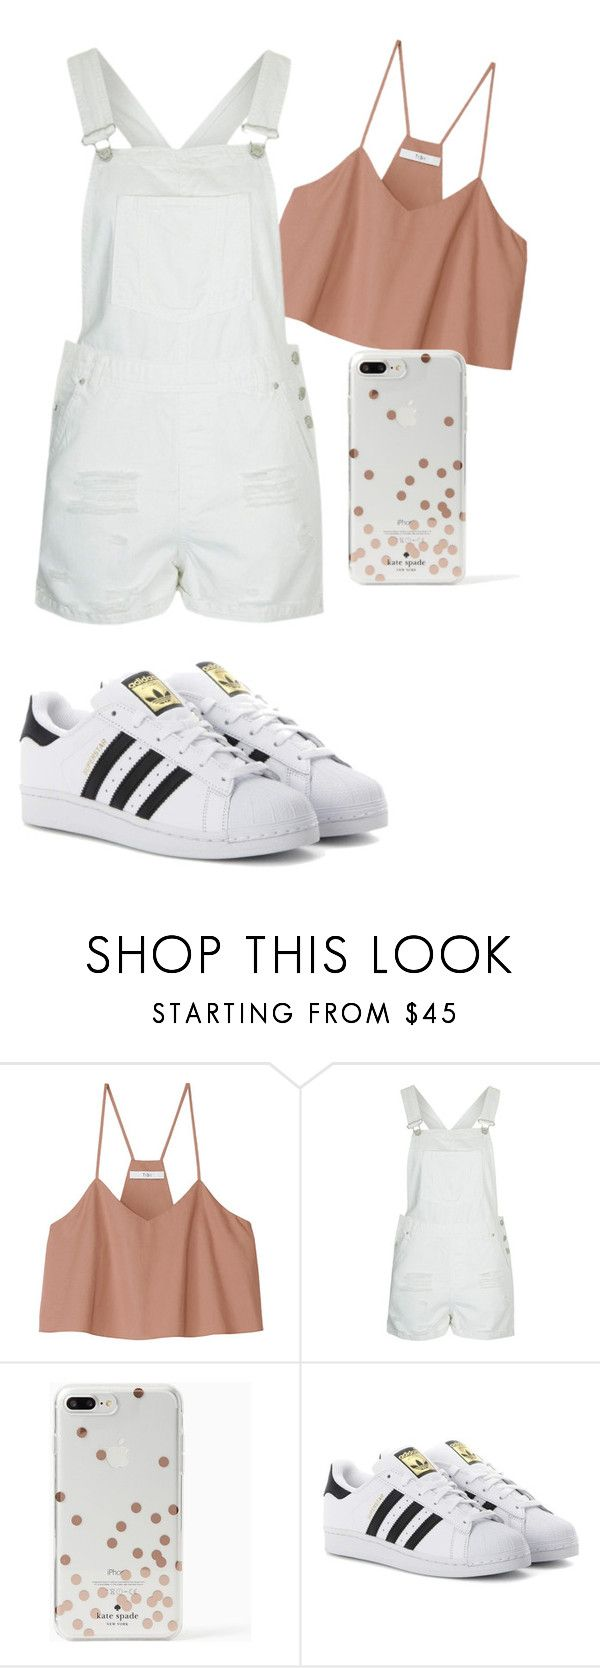 Pin by lauren romeo on s t y l e pinterest topshop adidas and